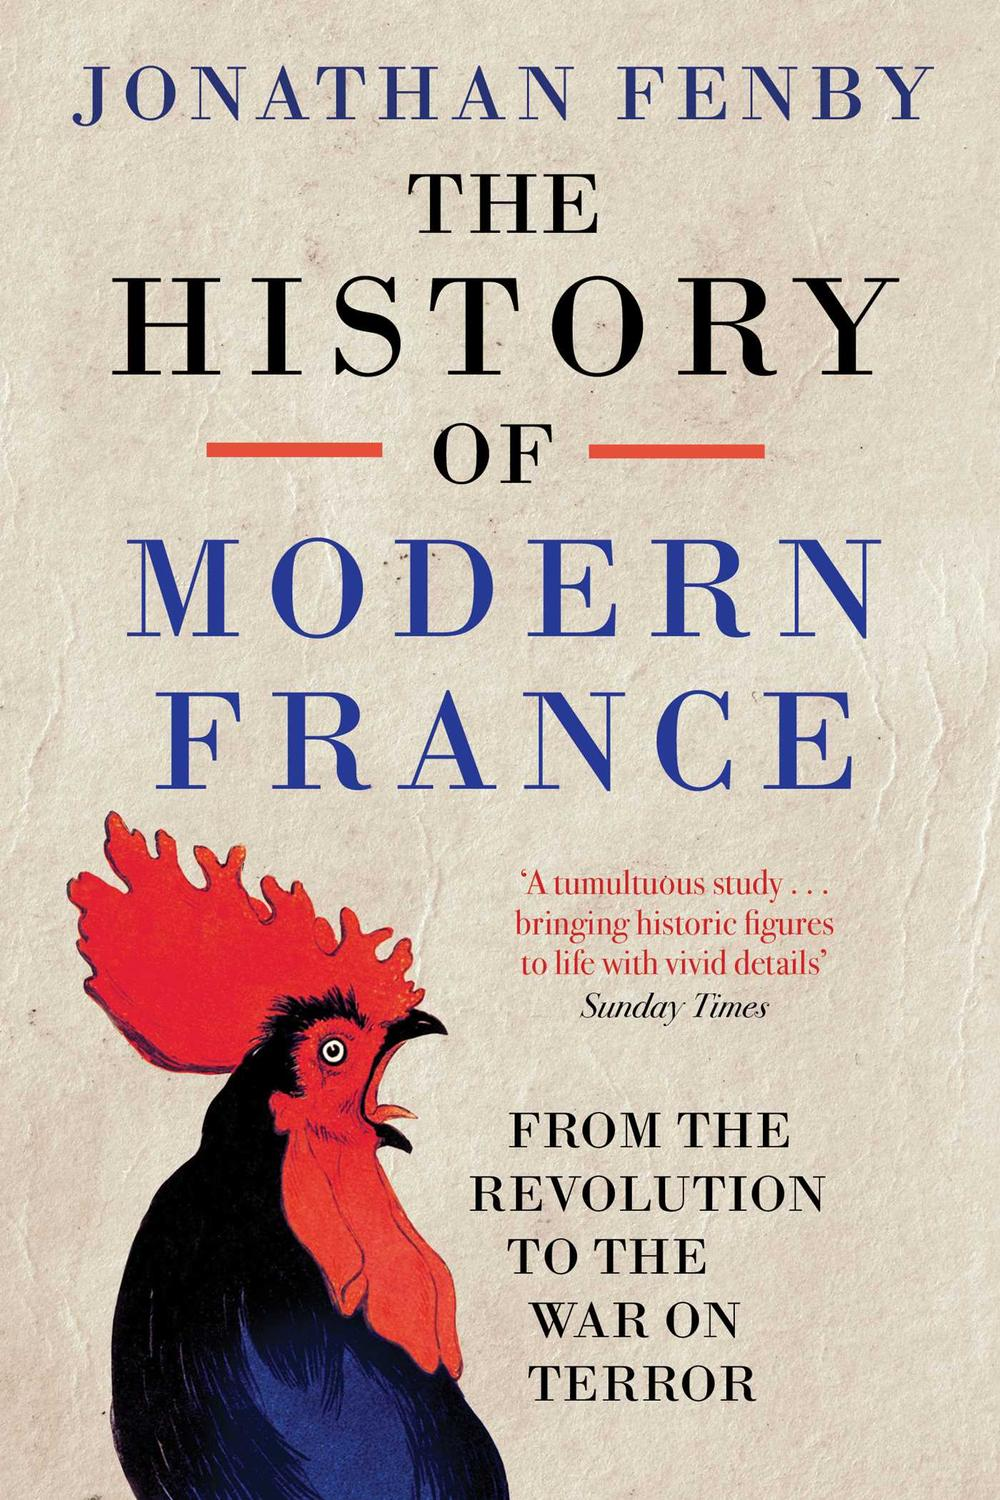 France history pdf of